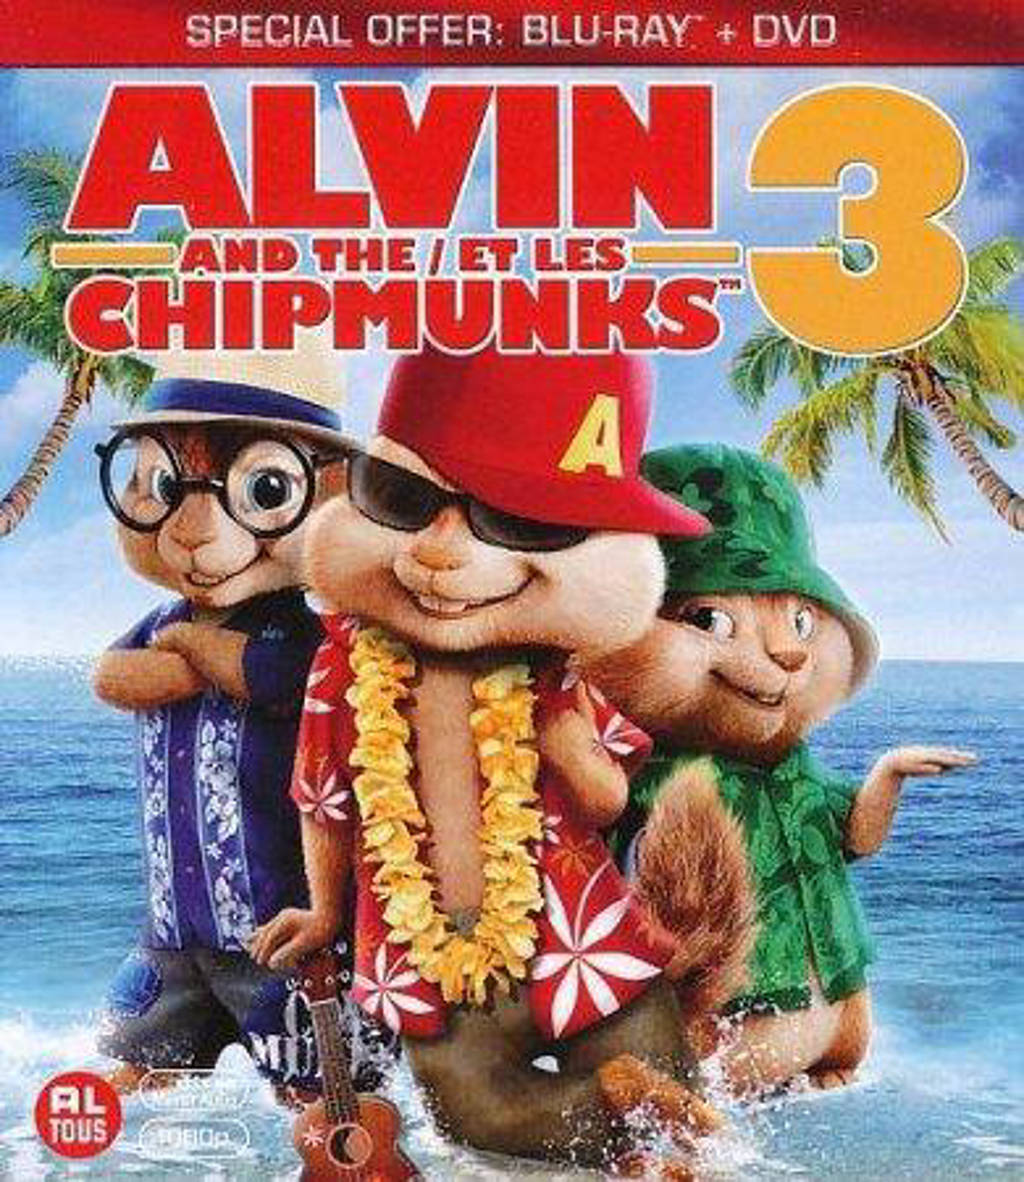 Alvin And The Chipmunks 3 Images alvin and the chipmunks 3 - chipwrecked (blu-ray)